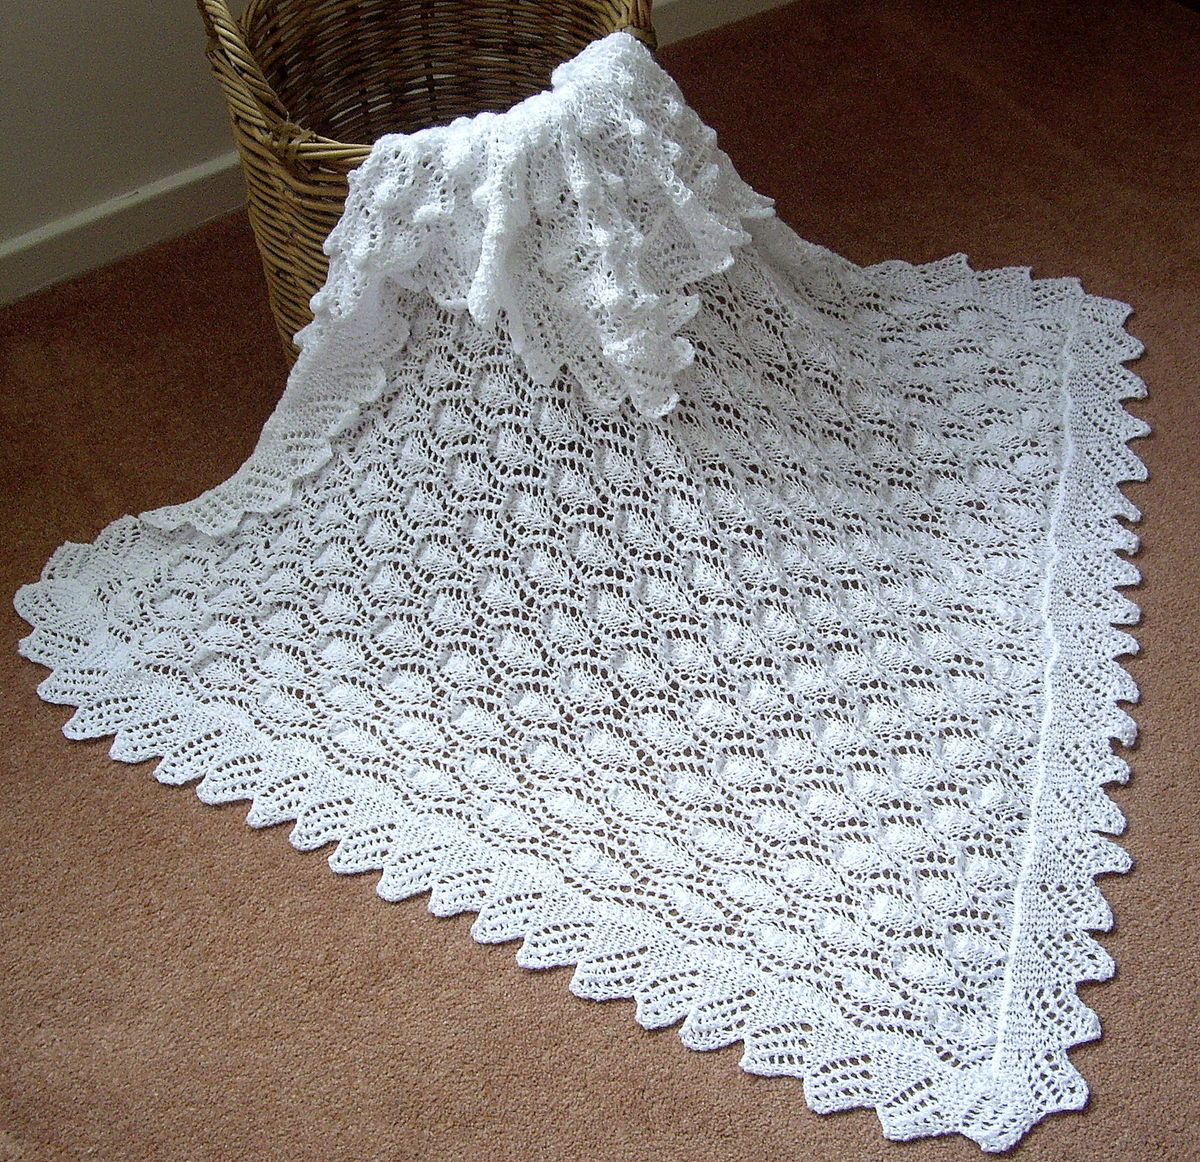 KNITTING PATTERN VERY PRETTY BABY BLANKET//SHAWL /& MATINEE COAT IN 4-PLY OR DK